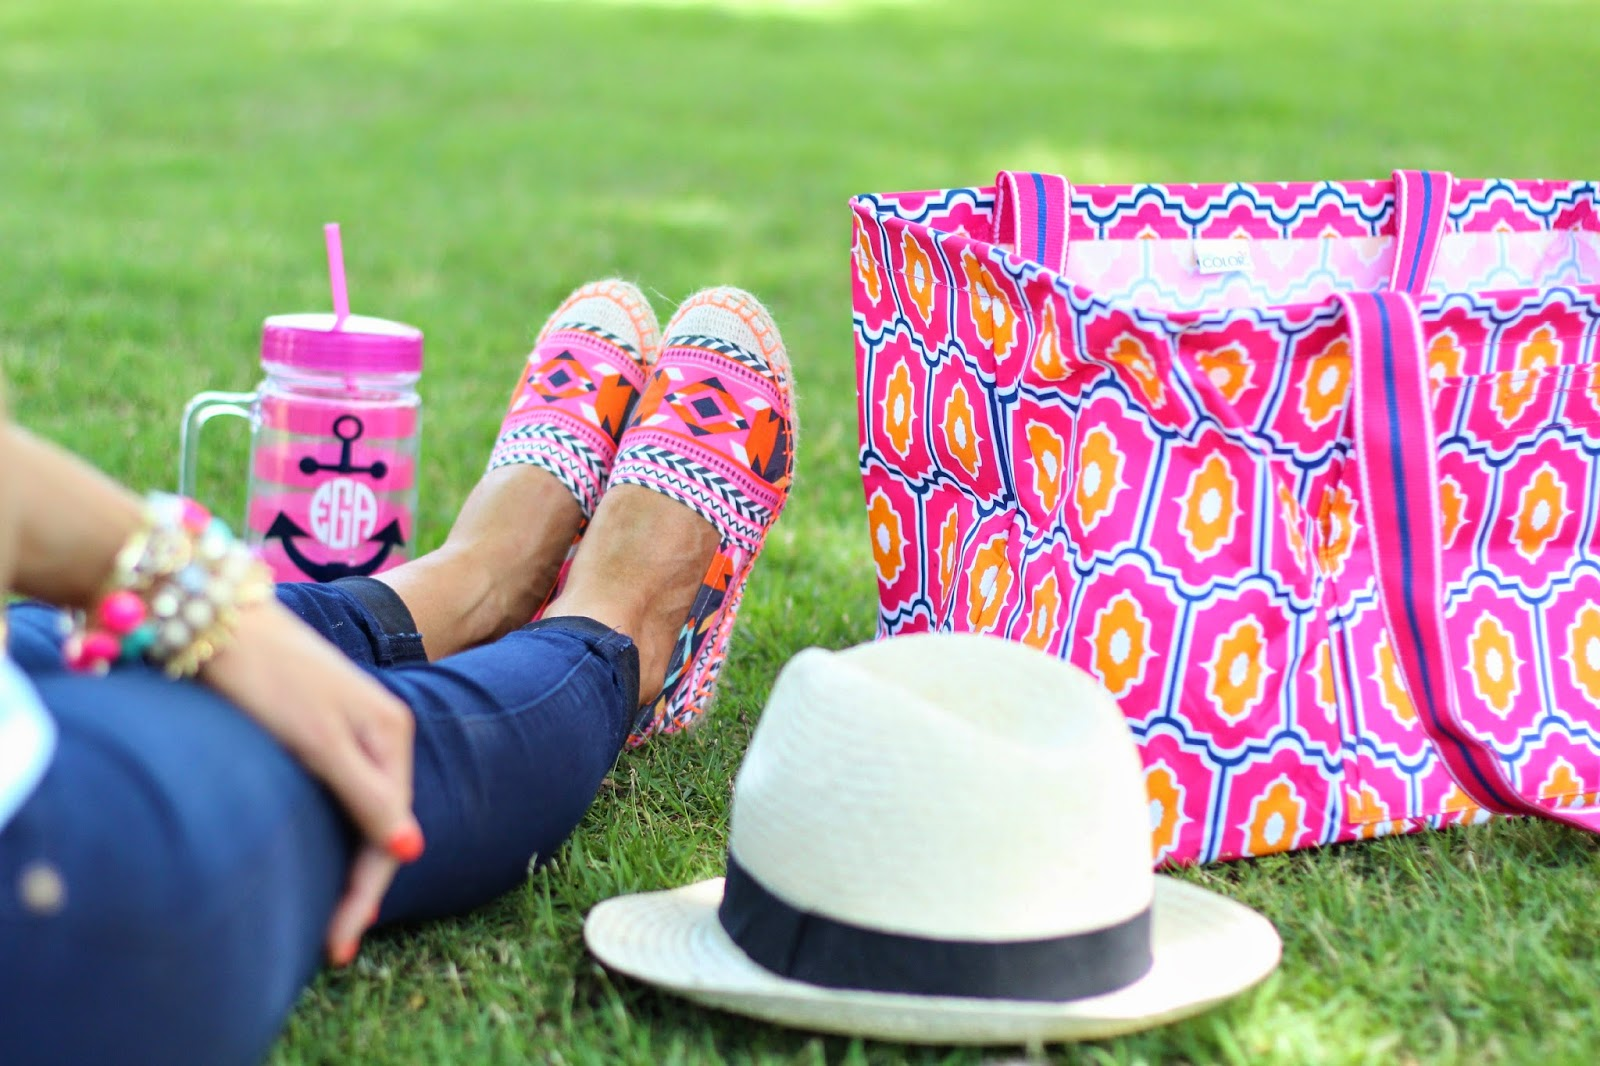 flat espadrilles, h&m flat espadrilles, tory burch flat espadrilles, all for color bin, forever 21 fedora, tumbler cup with anchor and monogram, malibeads bracelets, emily gemma, the sweetest thing